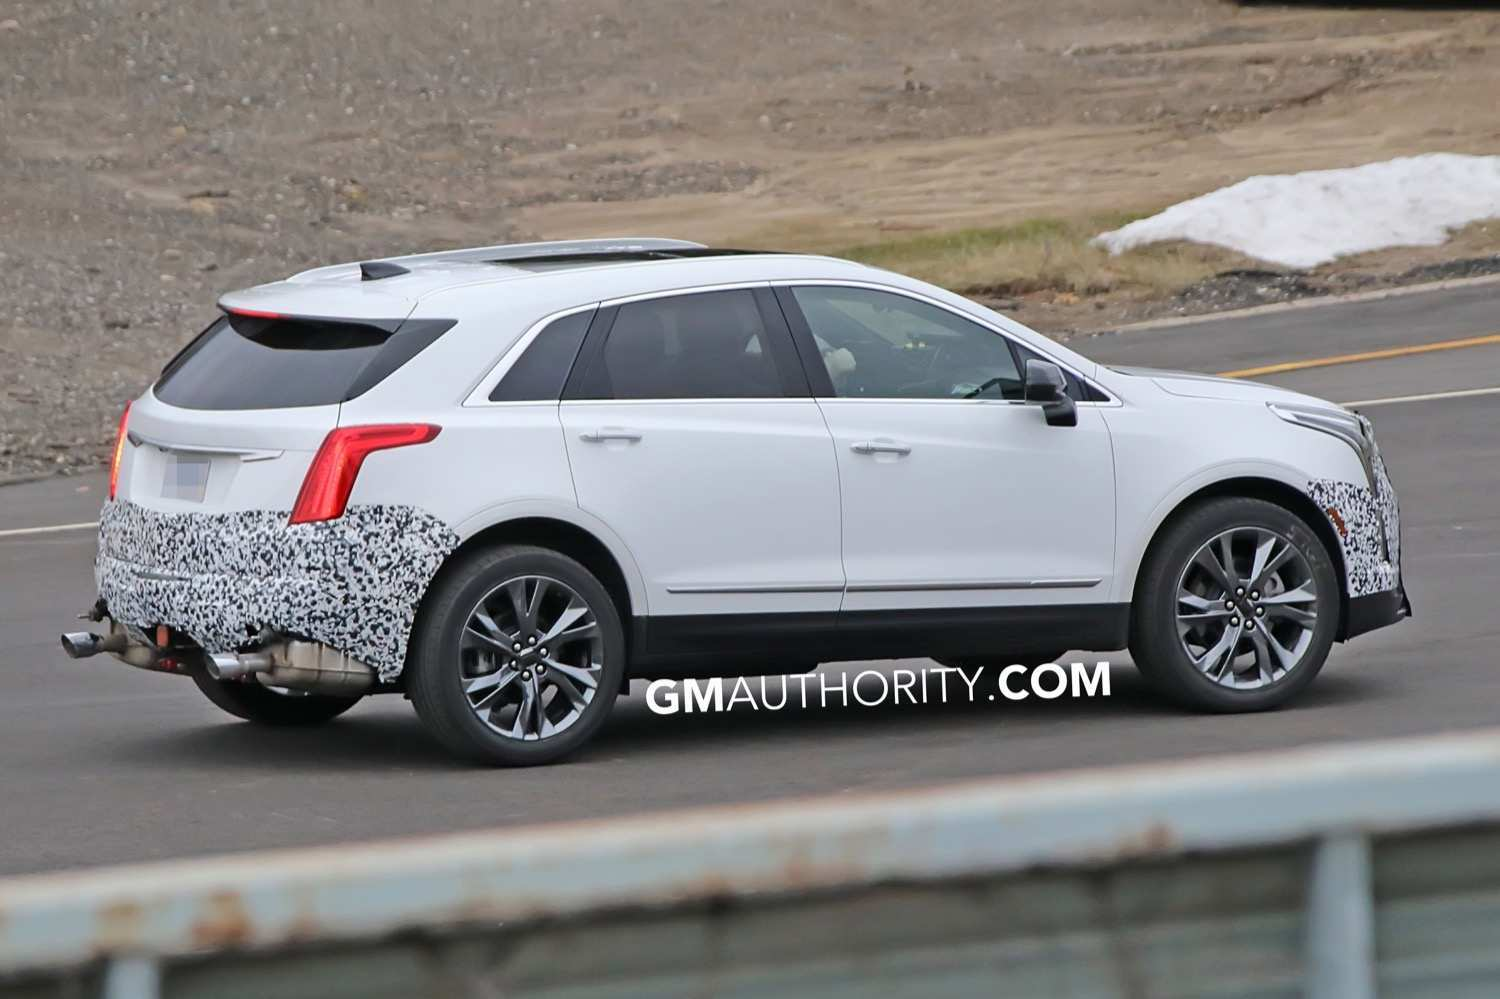 26 Concept of Spy Shots Cadillac Xt5 Spy Shoot with Spy Shots Cadillac Xt5